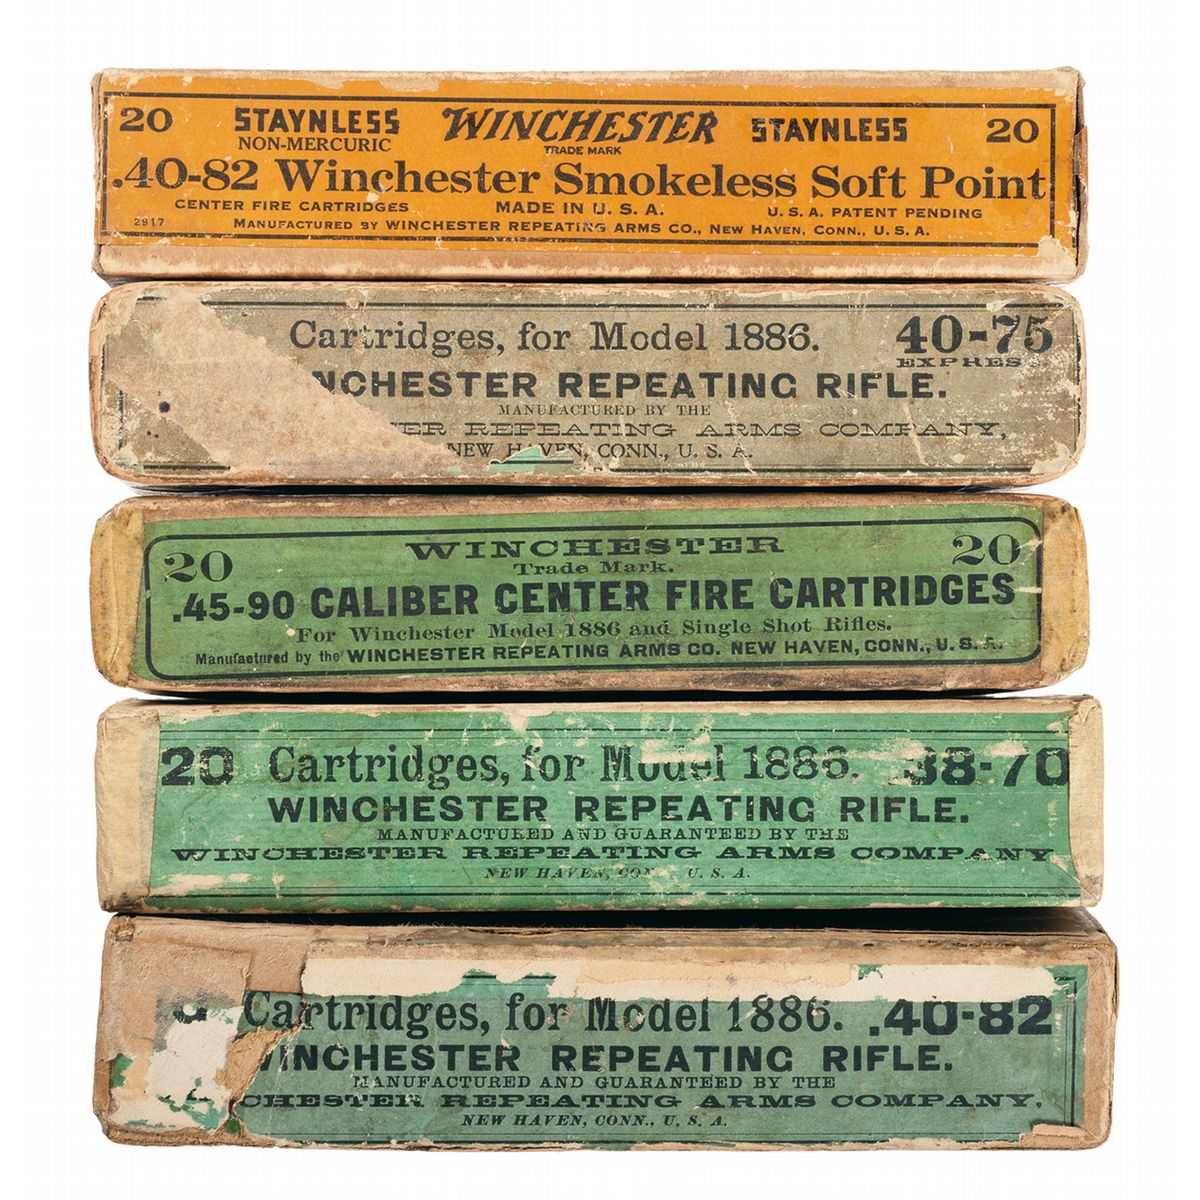 dating vintage ammo boxes Antique ammuniton in their original boxes, and obsolete ammunition for use this site specializes in sporting ammuntion (it is illegal to mail ammo).